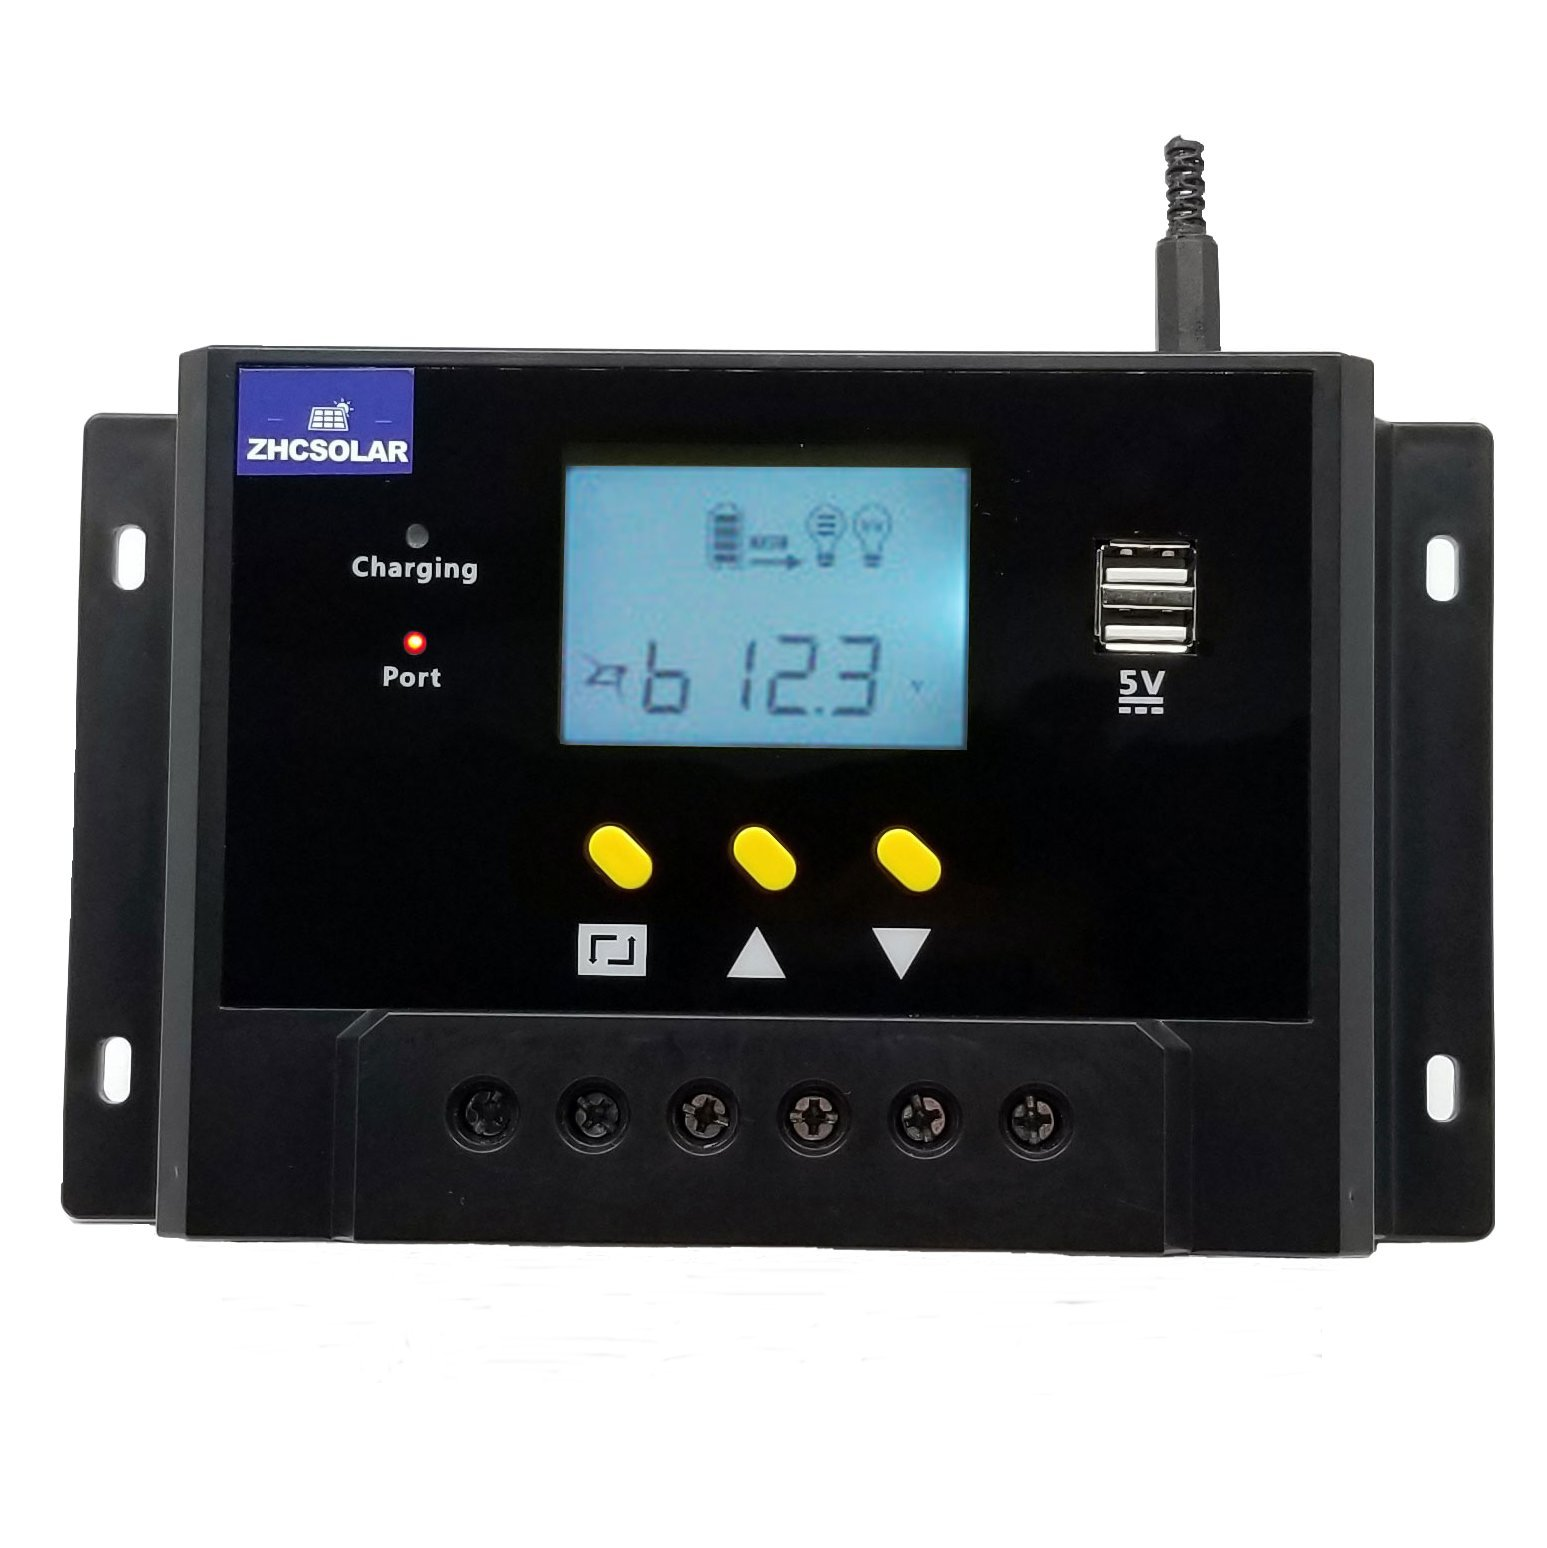 60A Solar Charge Controller 12V 24V Autoswitch 5V Dual USB Output Blacklight LCD Display 1440W Solar Panel Charging Regulator Anti-Flaming Housing Large Power Heat-Sink